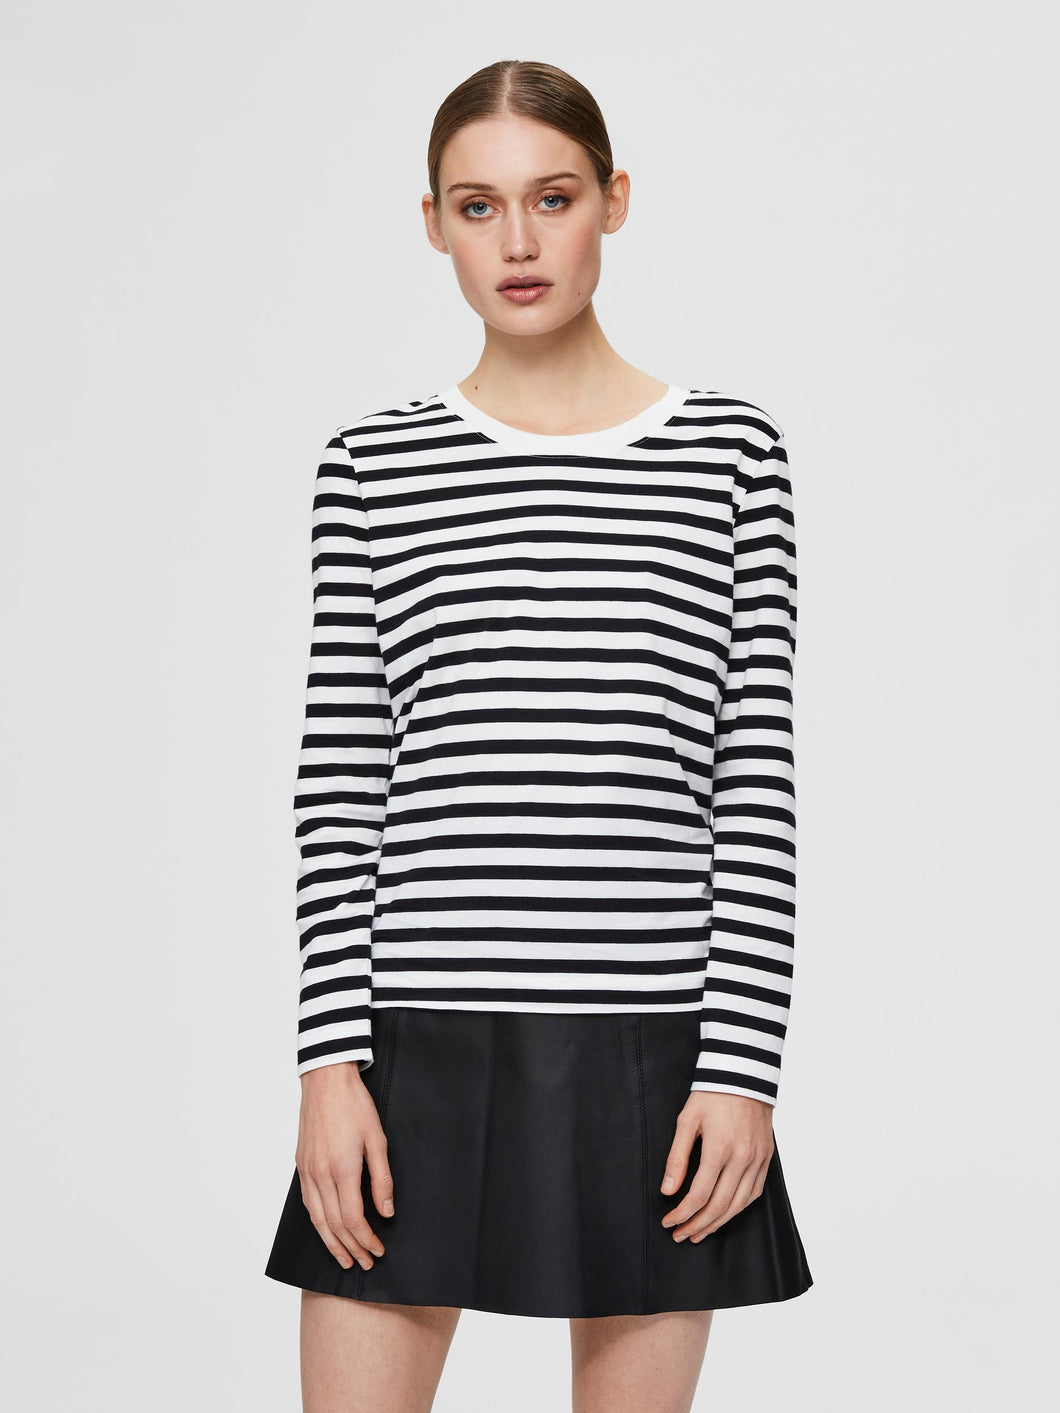 Striped Long Sleeved T Shirt - Black/White